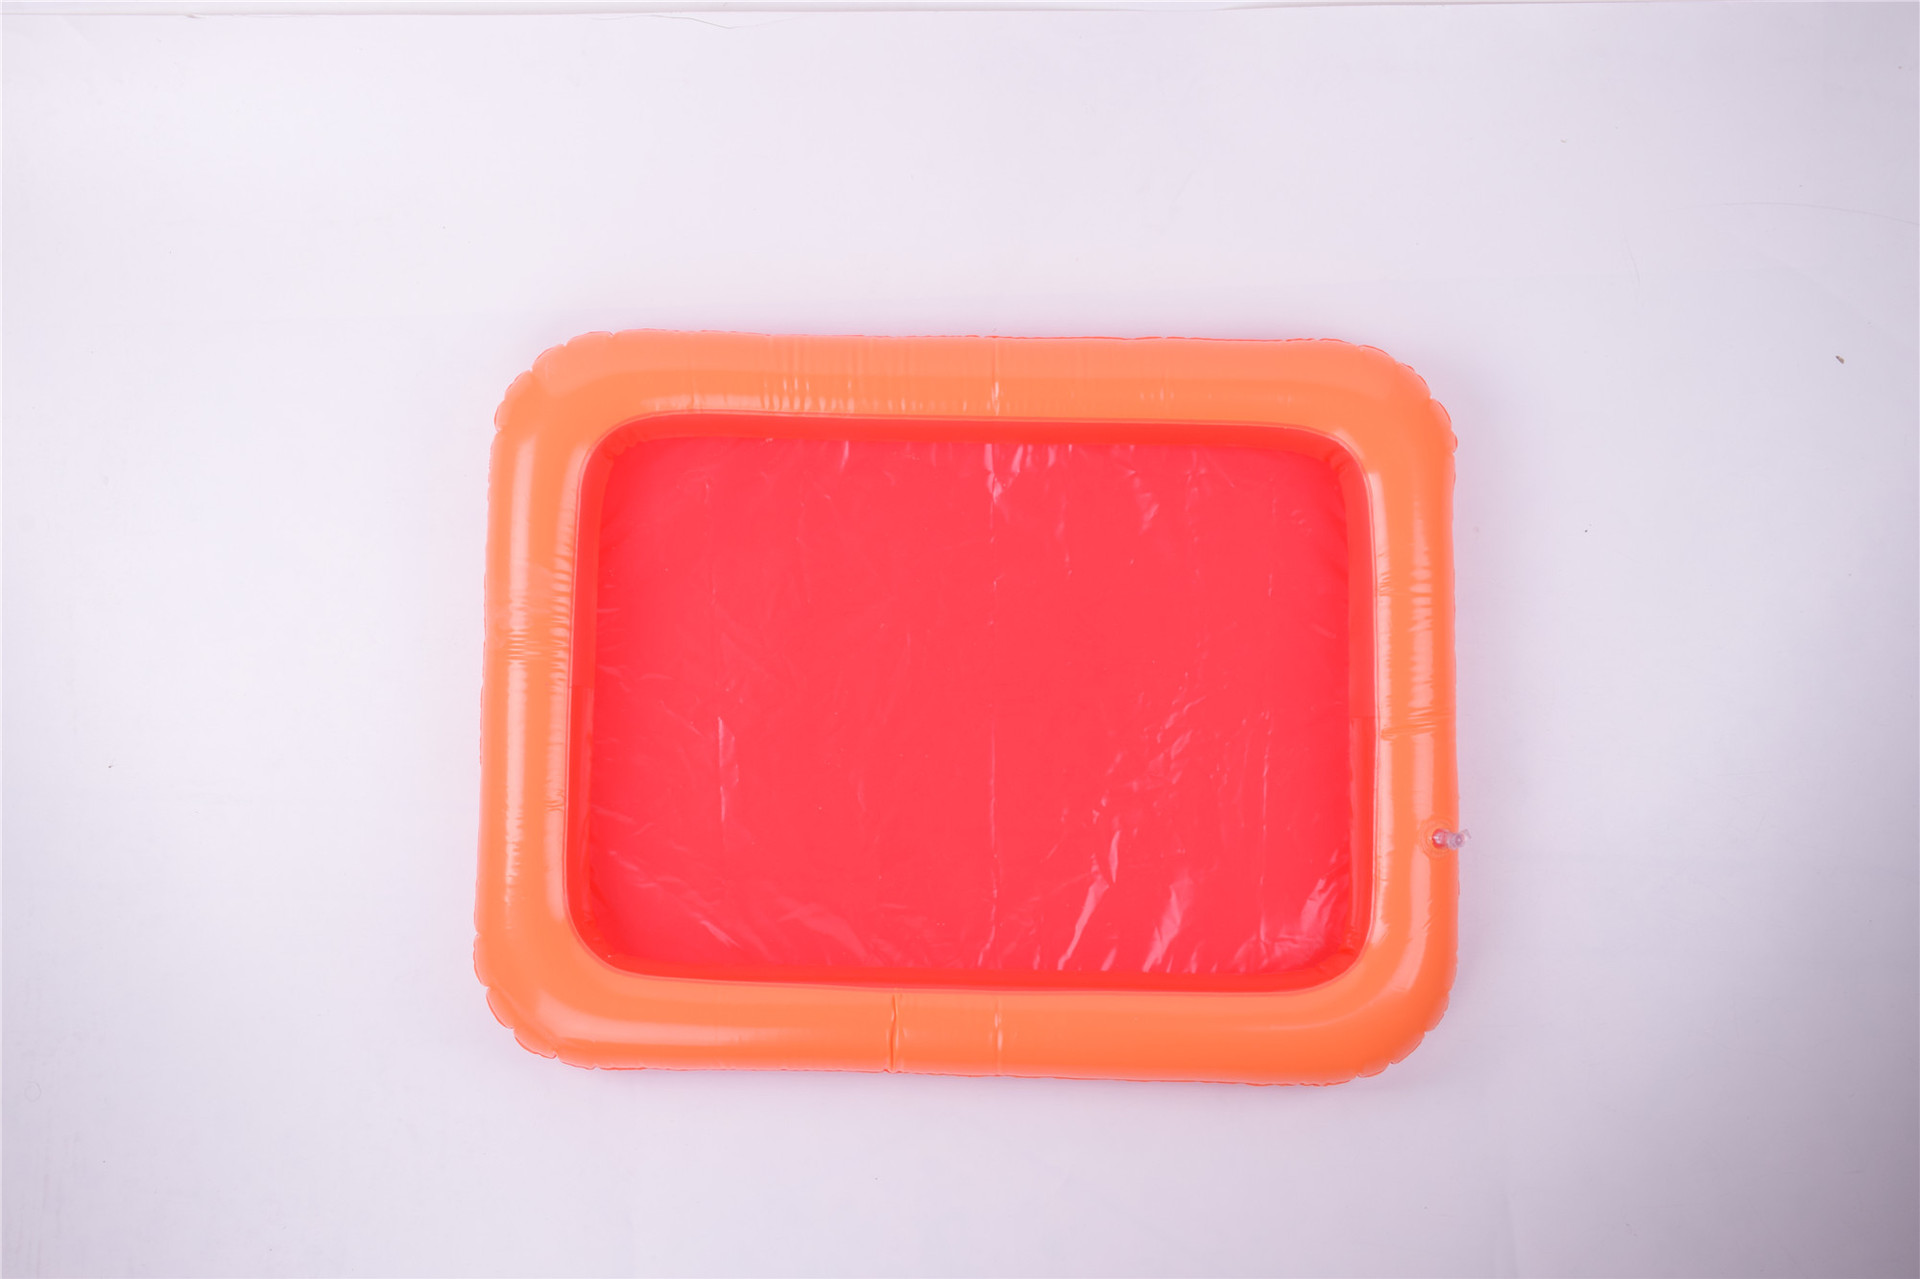 Sand Stars Space Pool Kinetic Sand Air Cushion Inflatable Sand Table Toy Yue Liang Sha Clay Fishing Tray